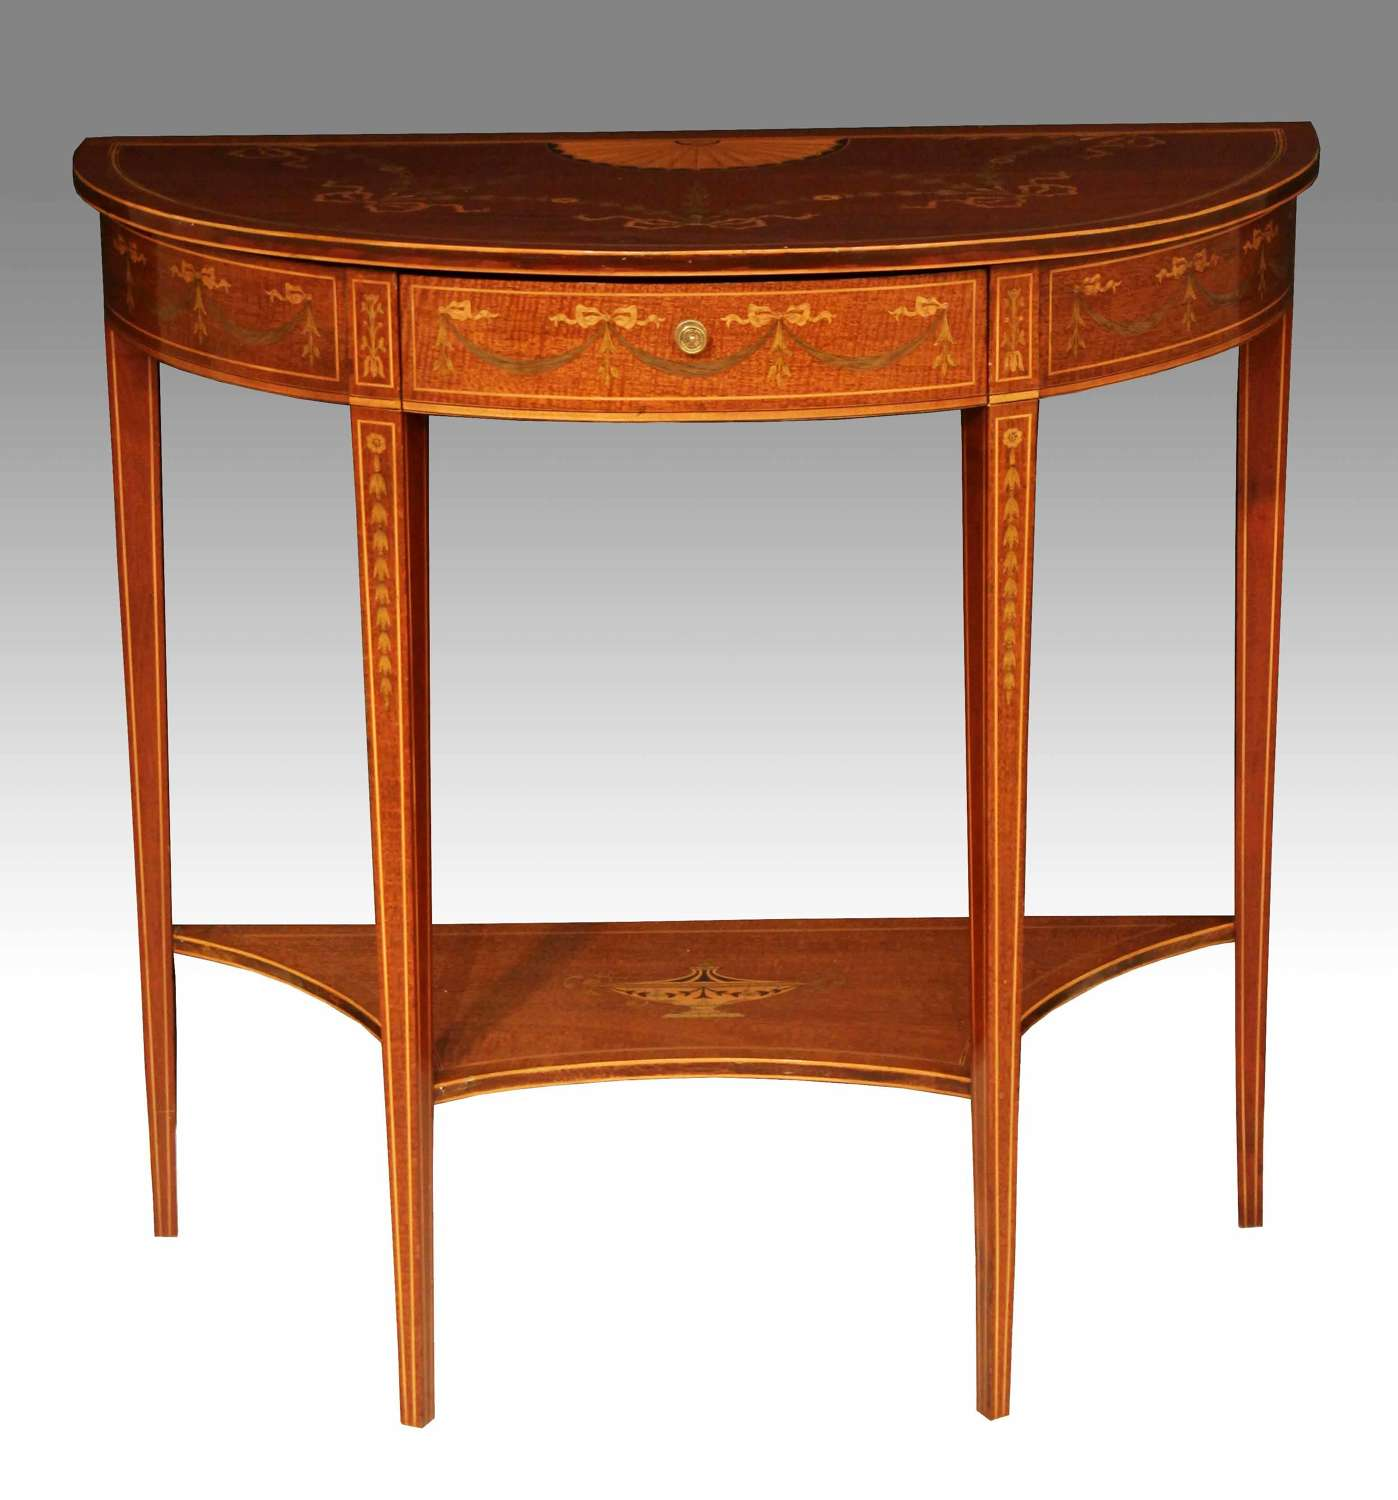 A Late Victorian Mahogany Inlaid Demilune Side Table